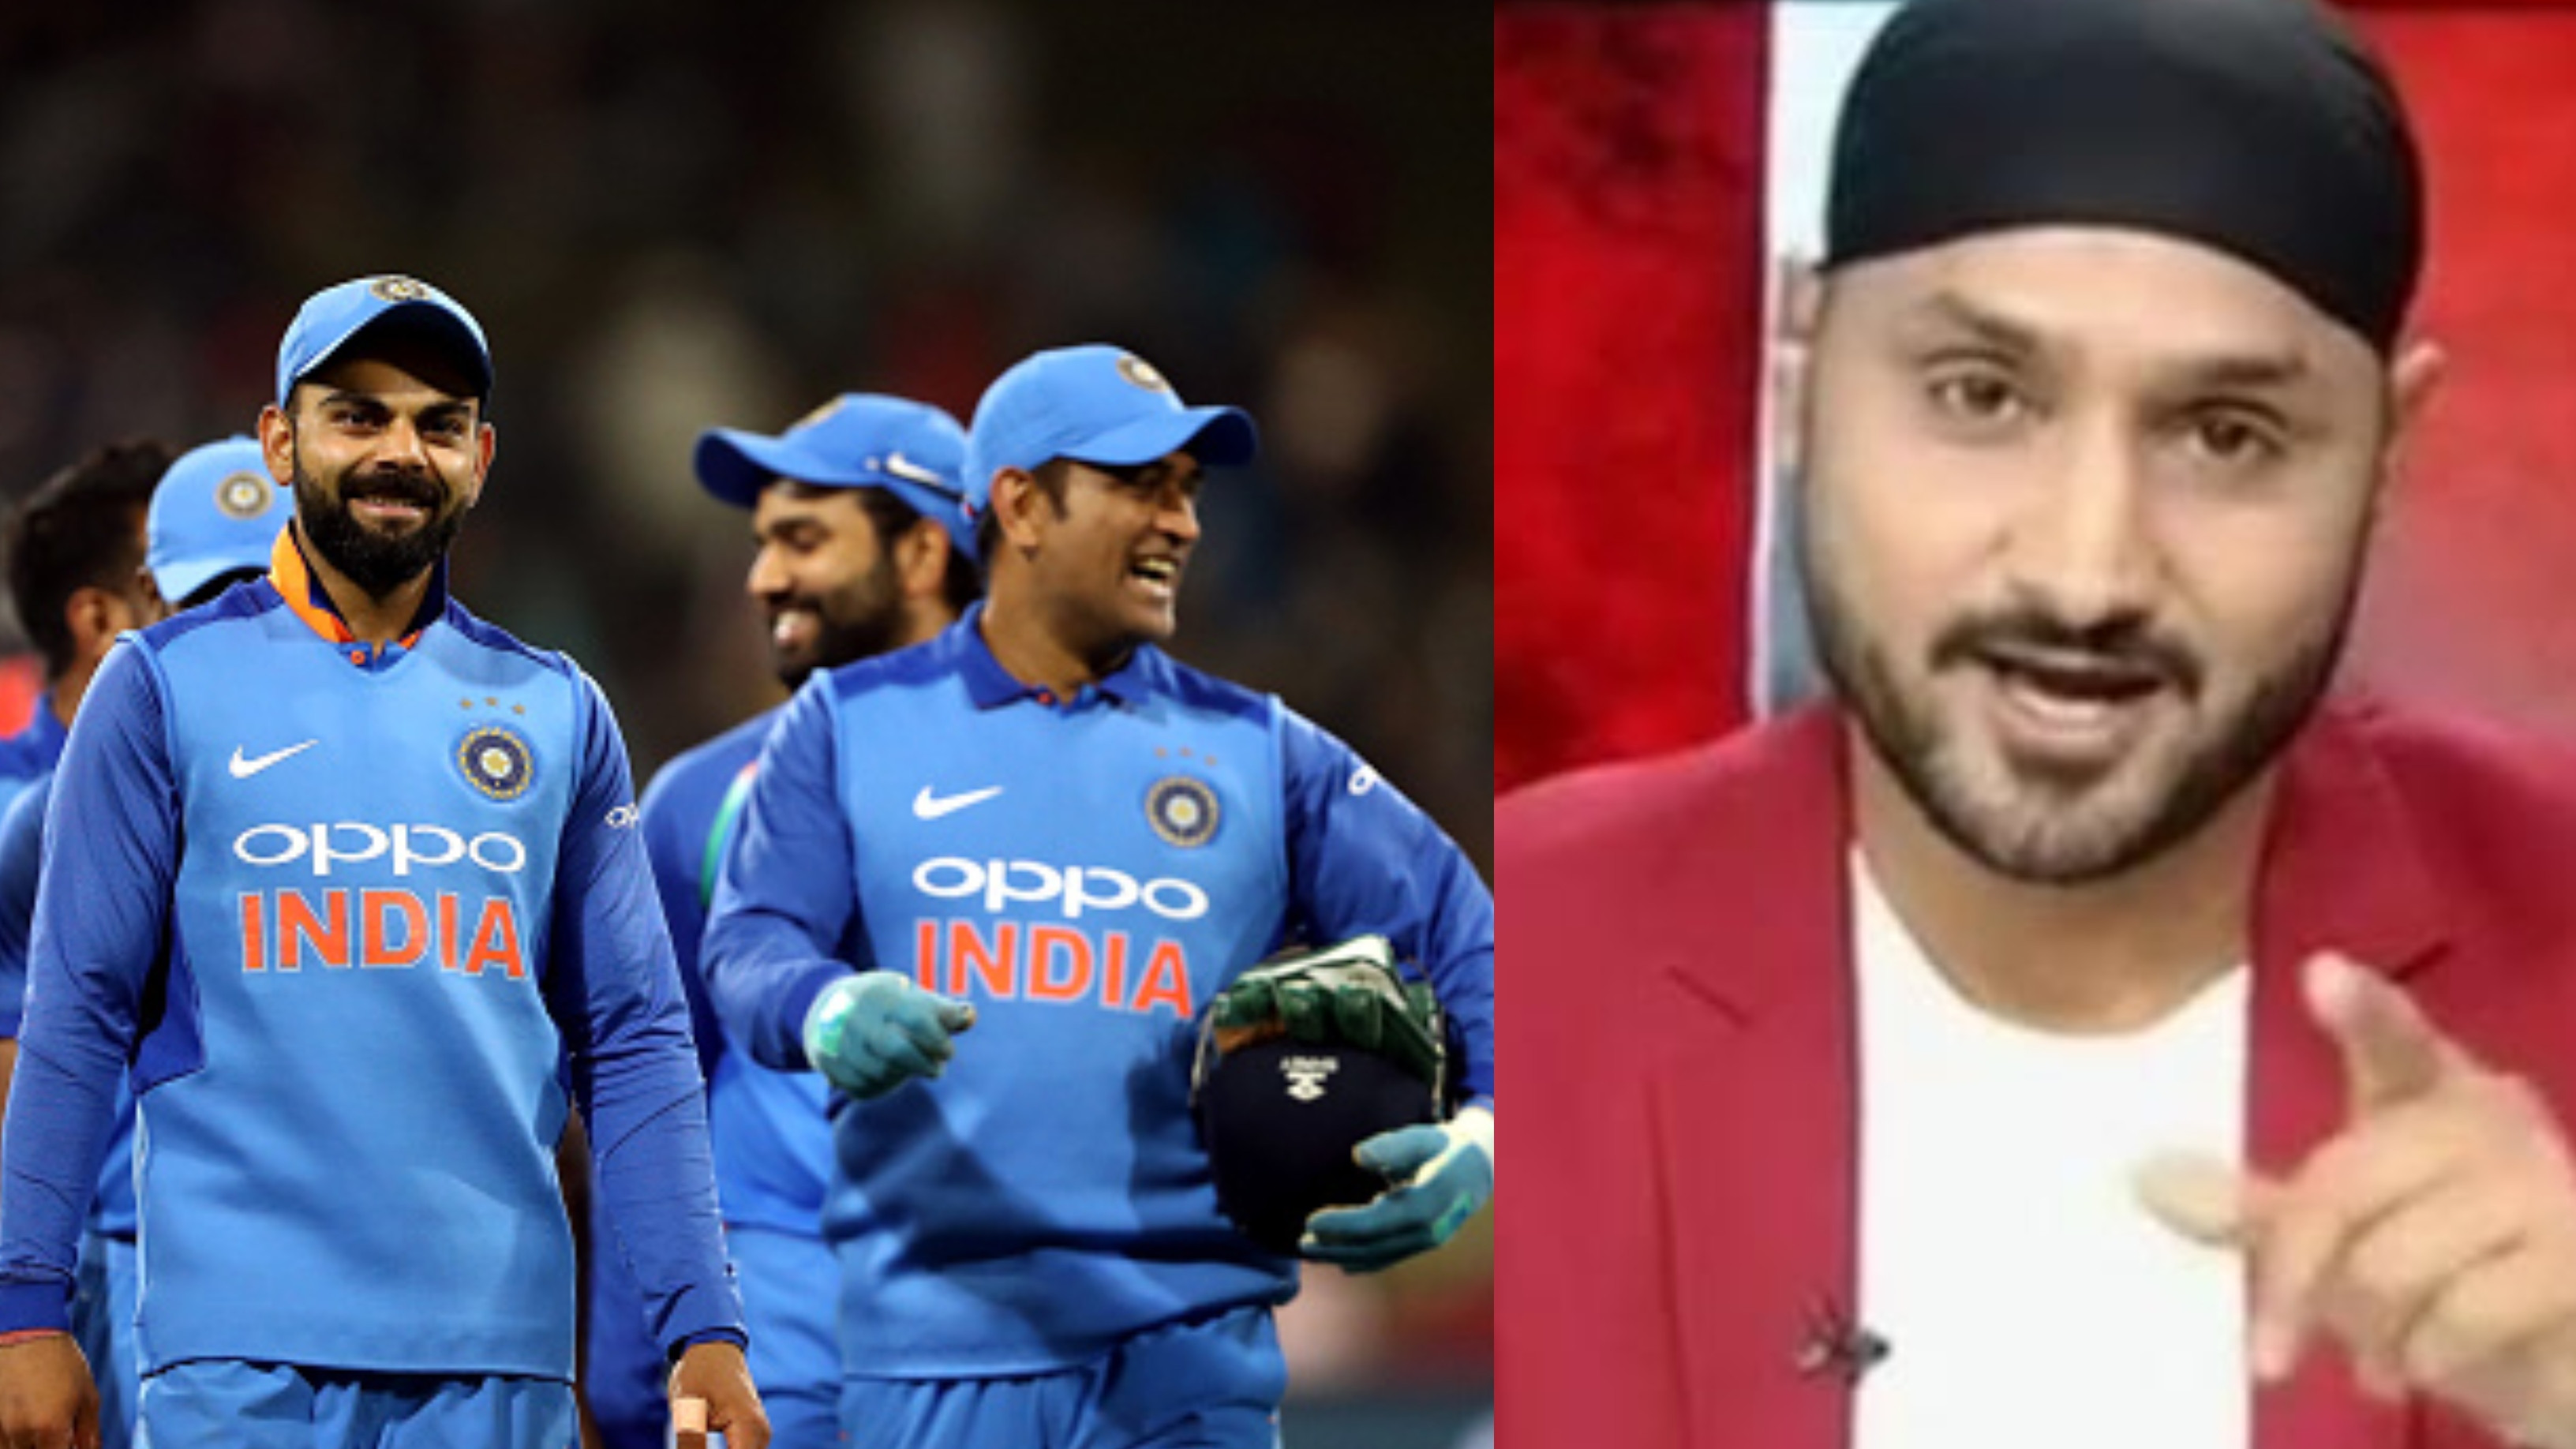 IND v AUS 2019: India should go with a mix-and-match squad for the Australian series, opines Harbhajan Singh